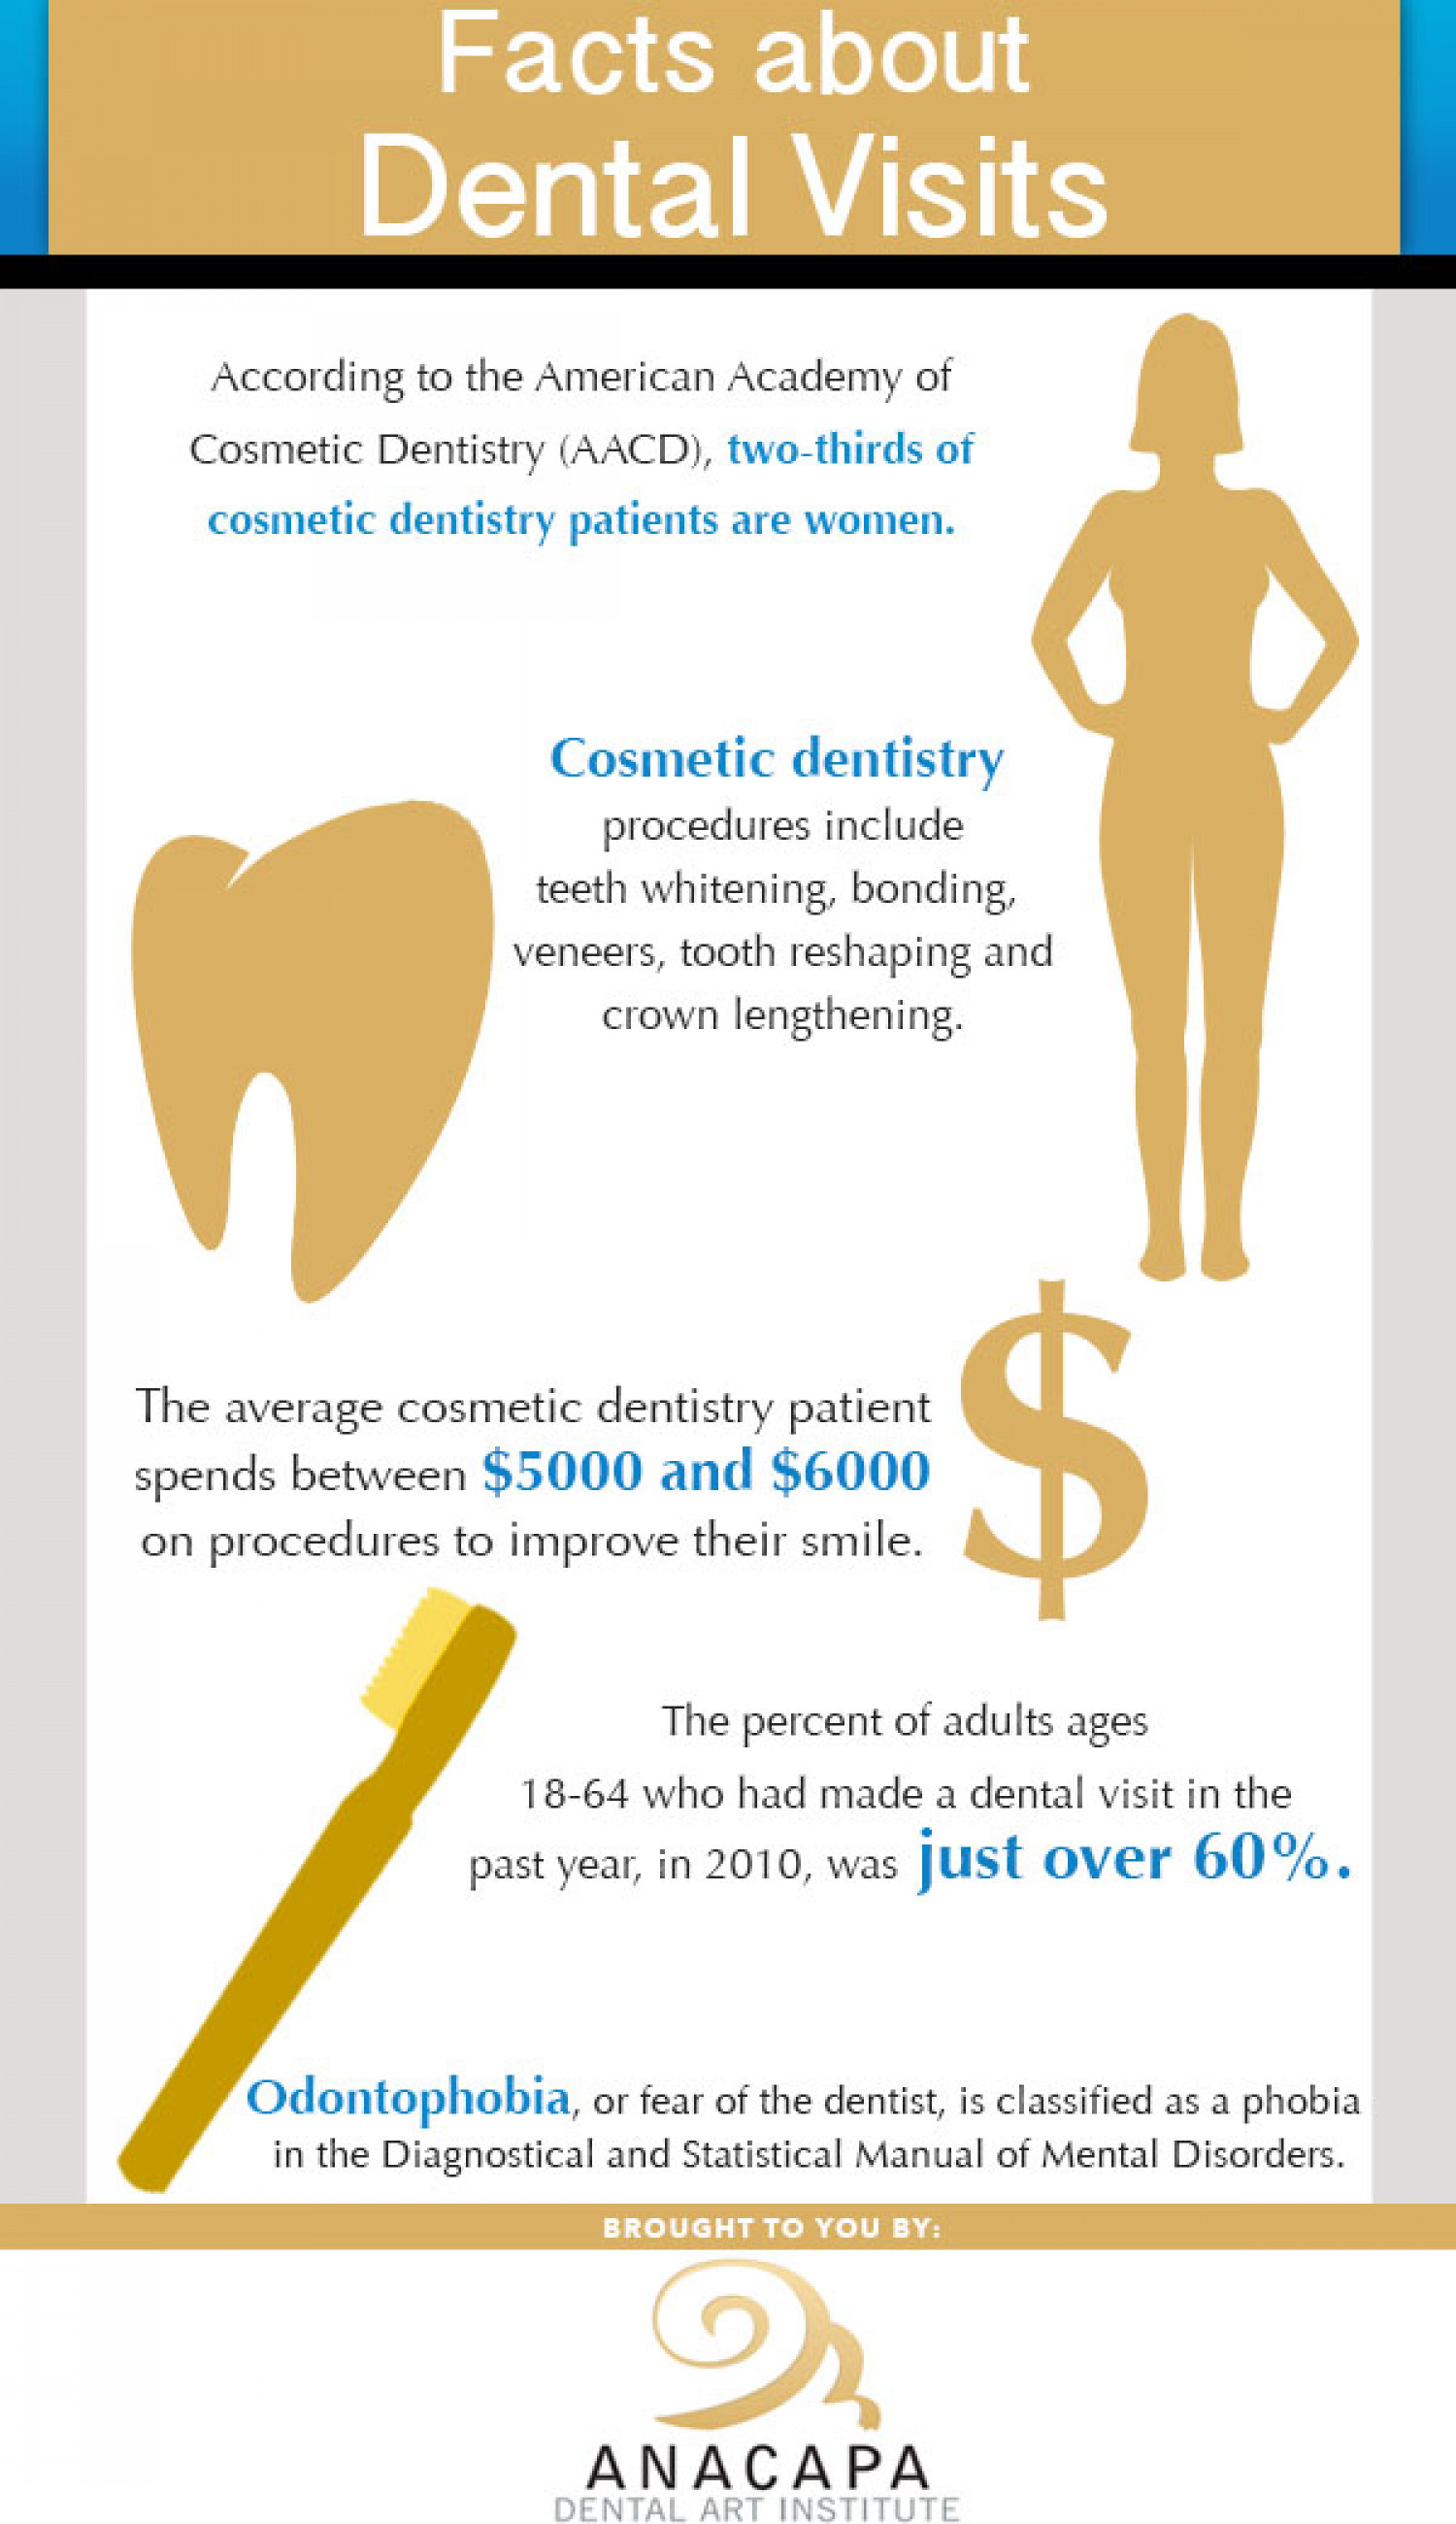 Facts About Dental Visits Infographic